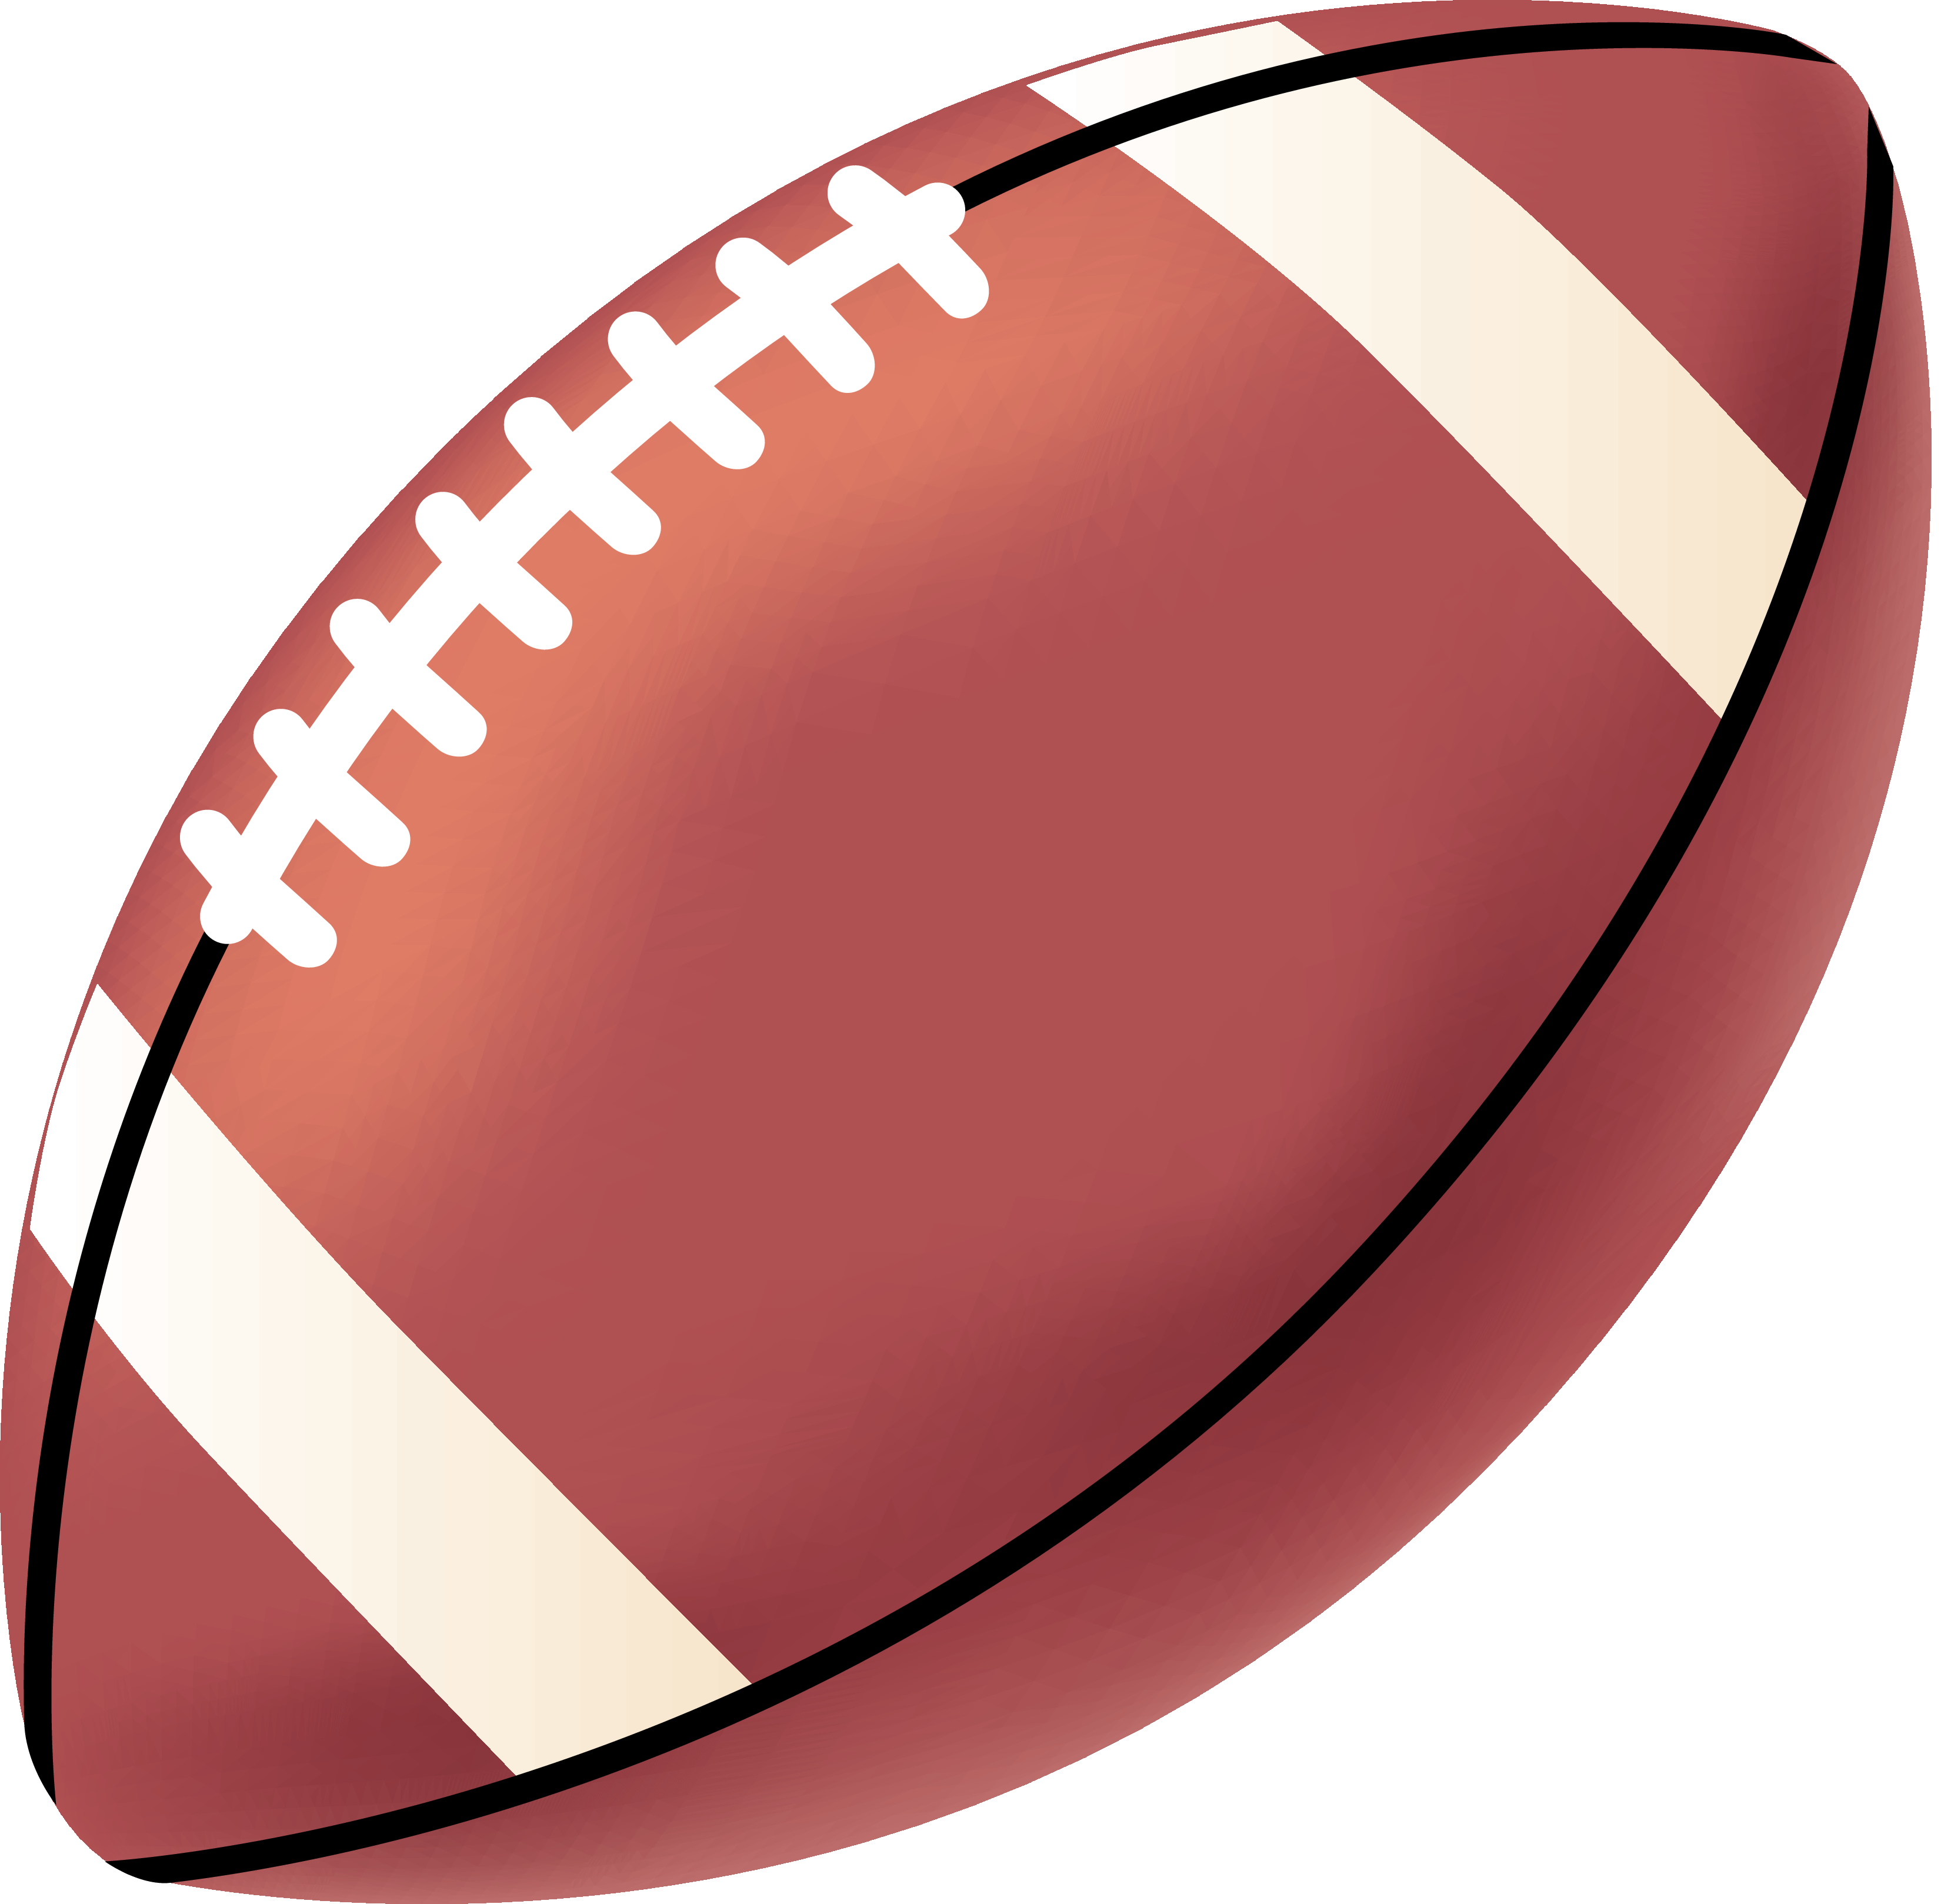 Football clip art printable free clipart images.